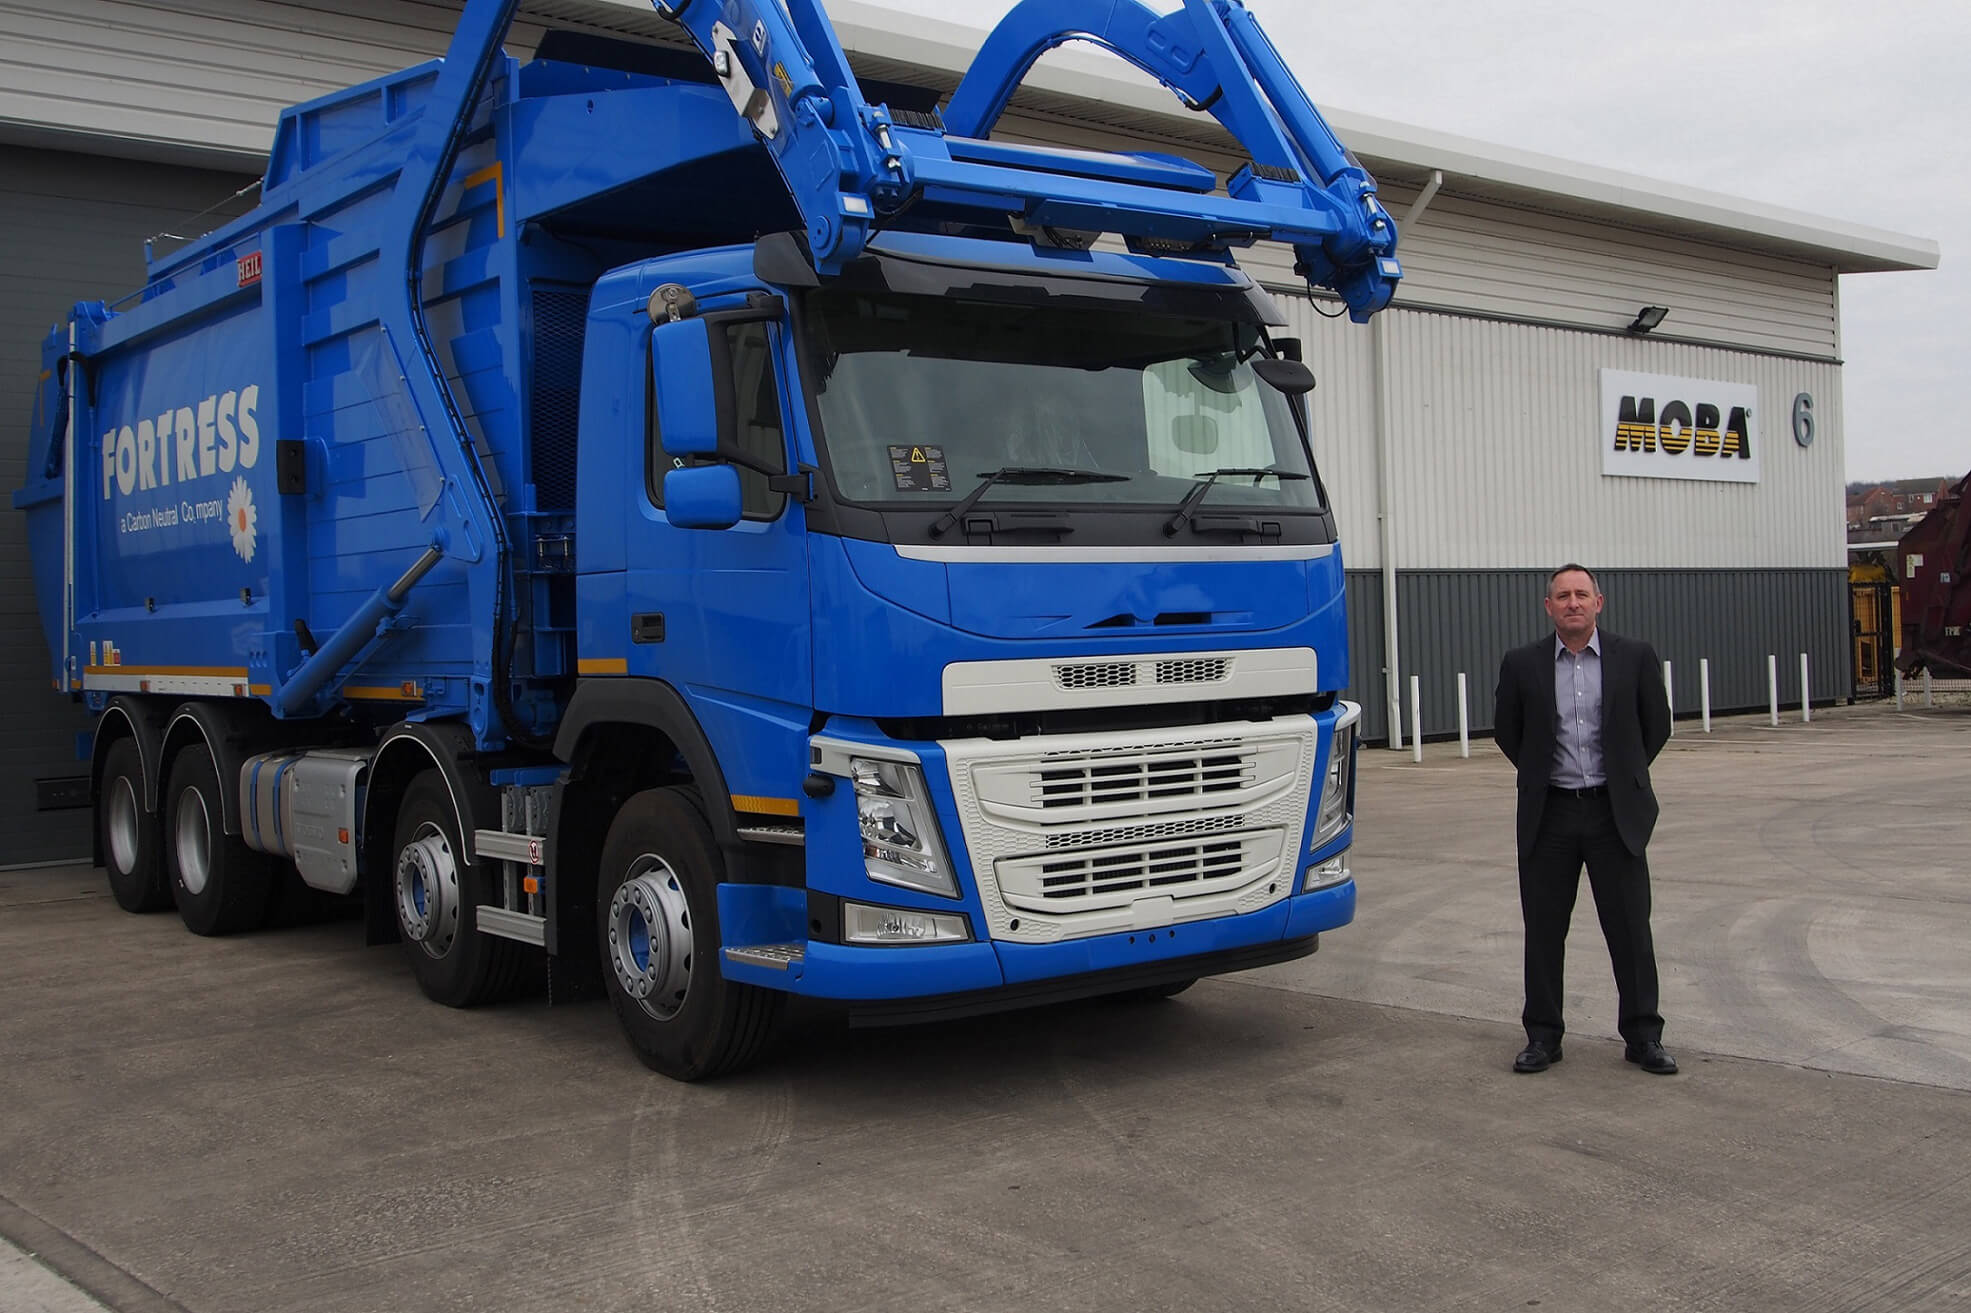 Specialist machinery supplier moves its UK headquarters to Barnsley